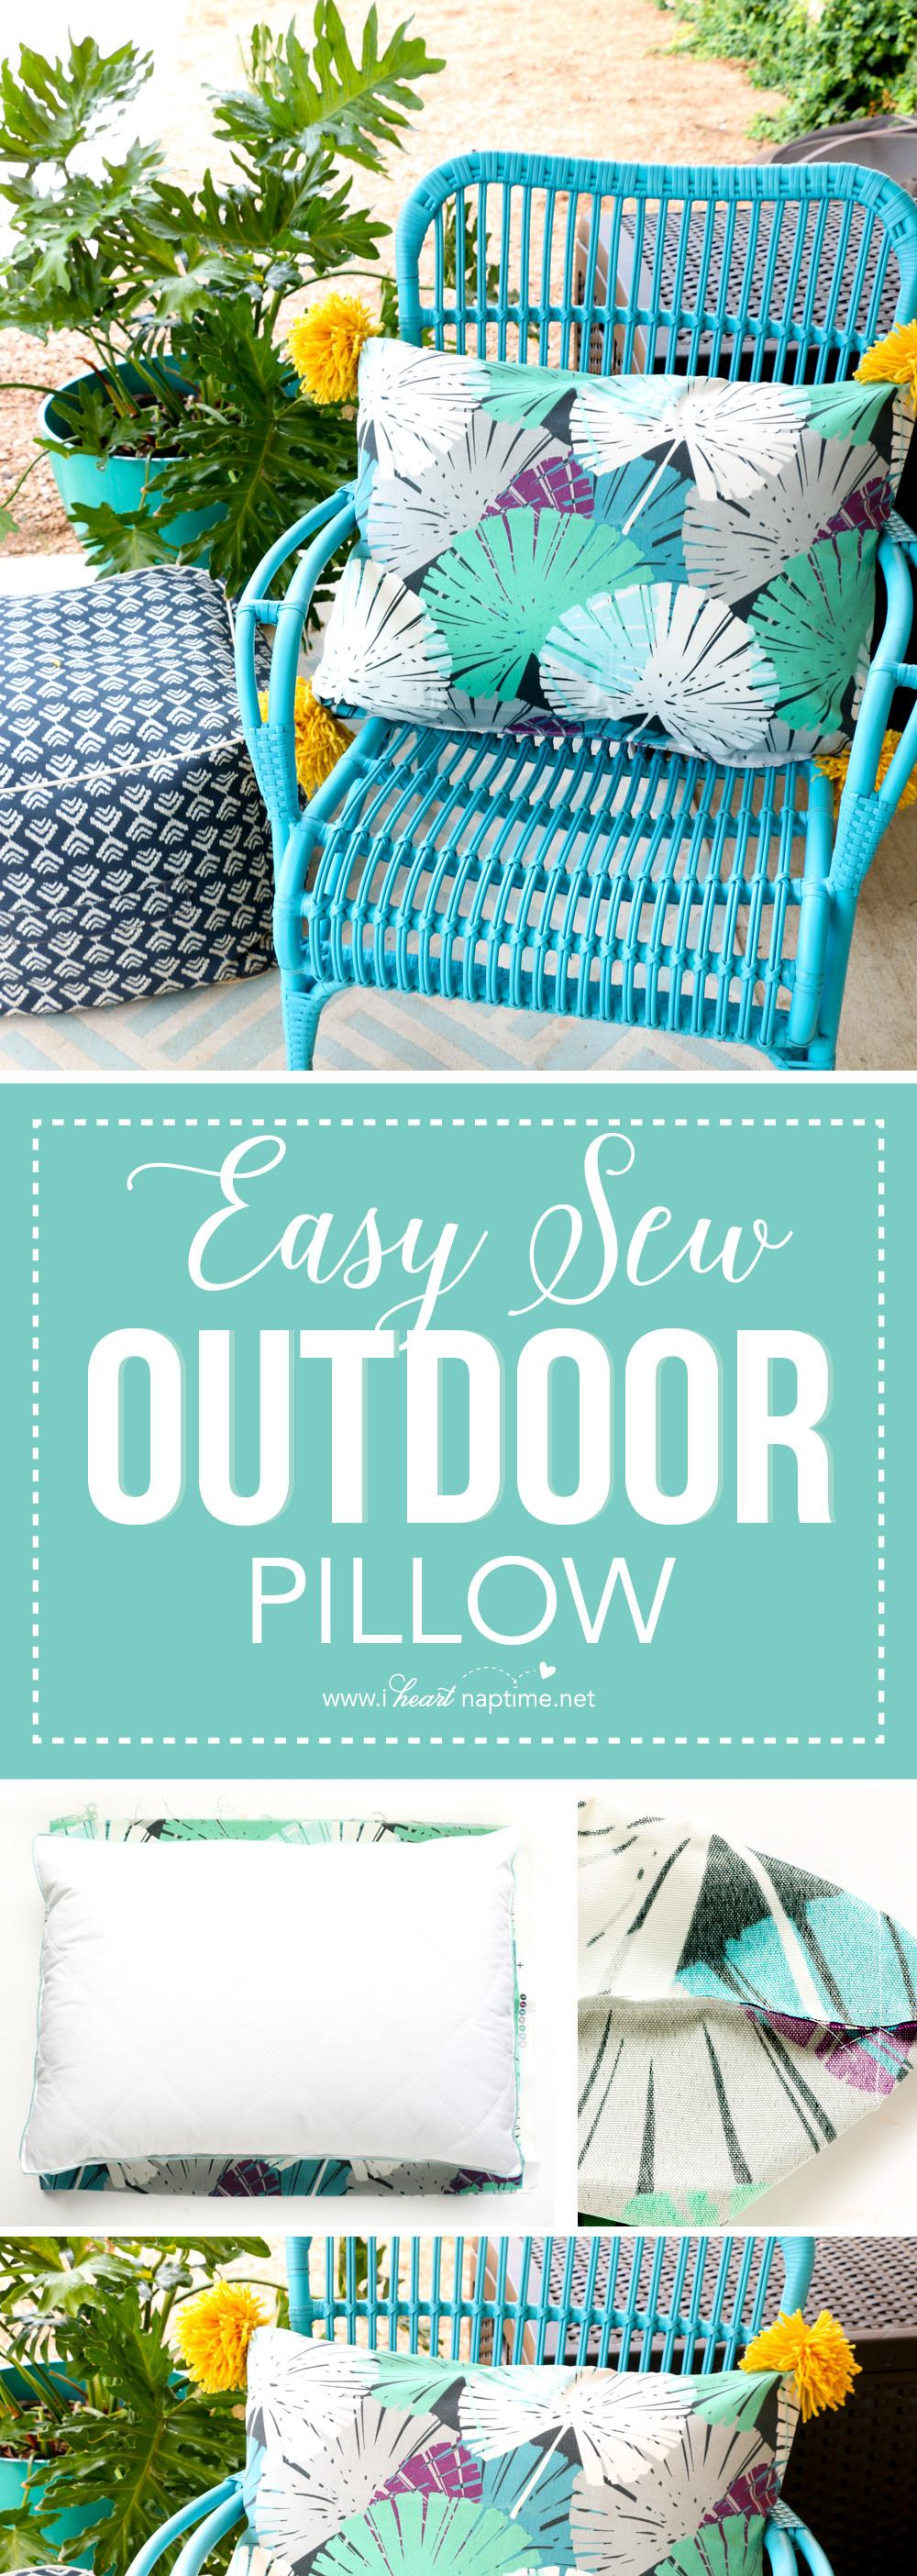 Easy Sew Outdoor Pillow Heart Nap Time